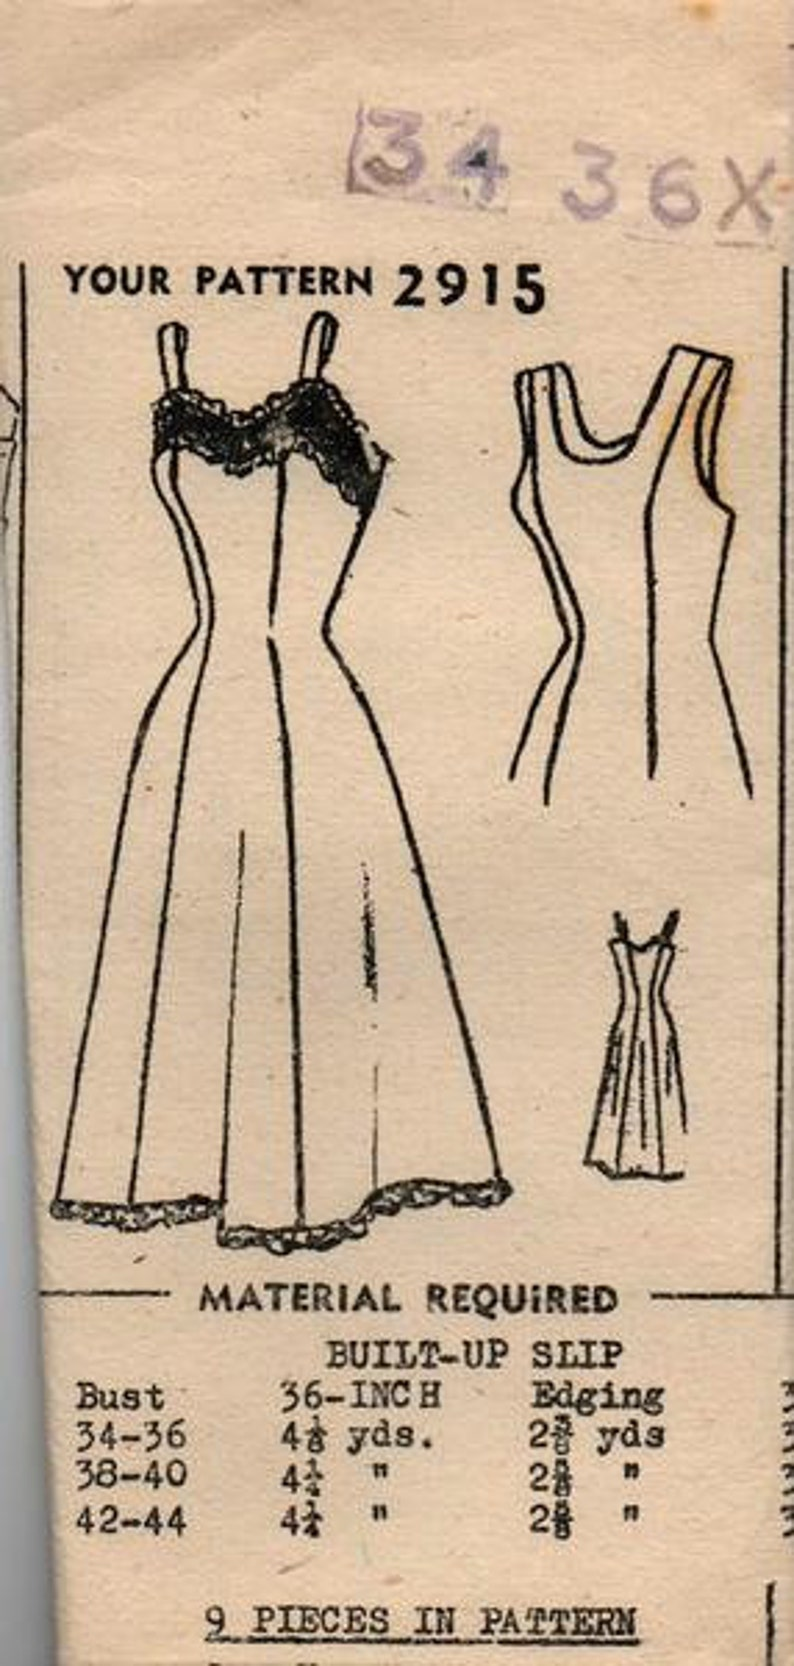 3bda25623dd9f 1950s Mail Order Lingerie Pattern - Full Slip - Pattern 2915 - Bust 34 - 36  Inches Unused and Factory Folded (P015)